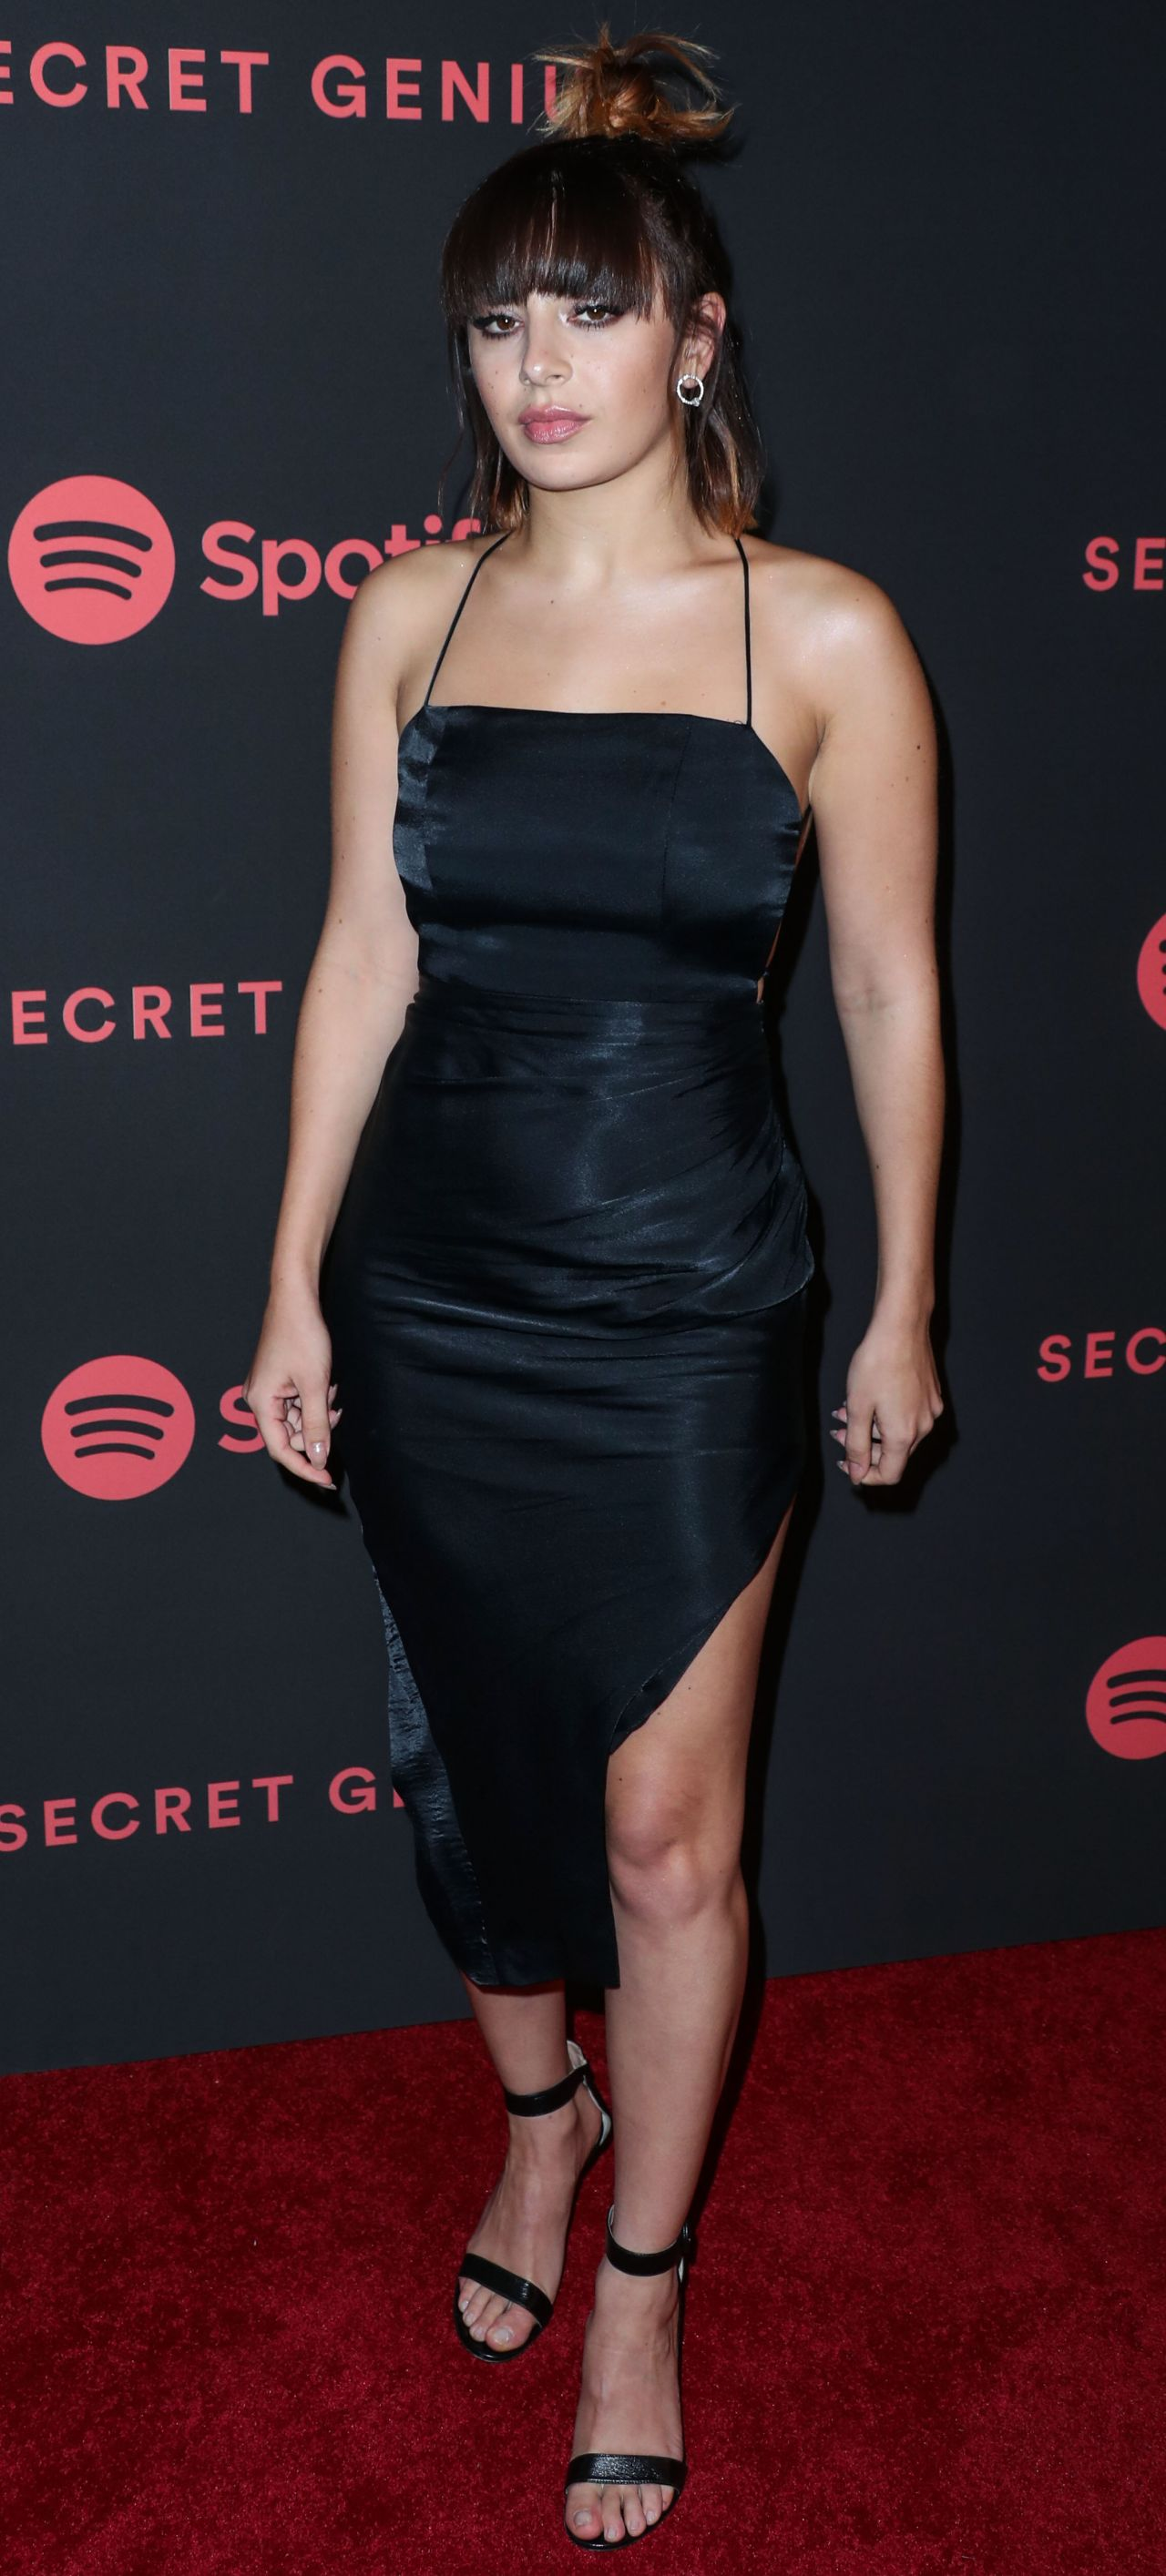 Charli Xcx 2018 Spotify S Secret Genius Awards